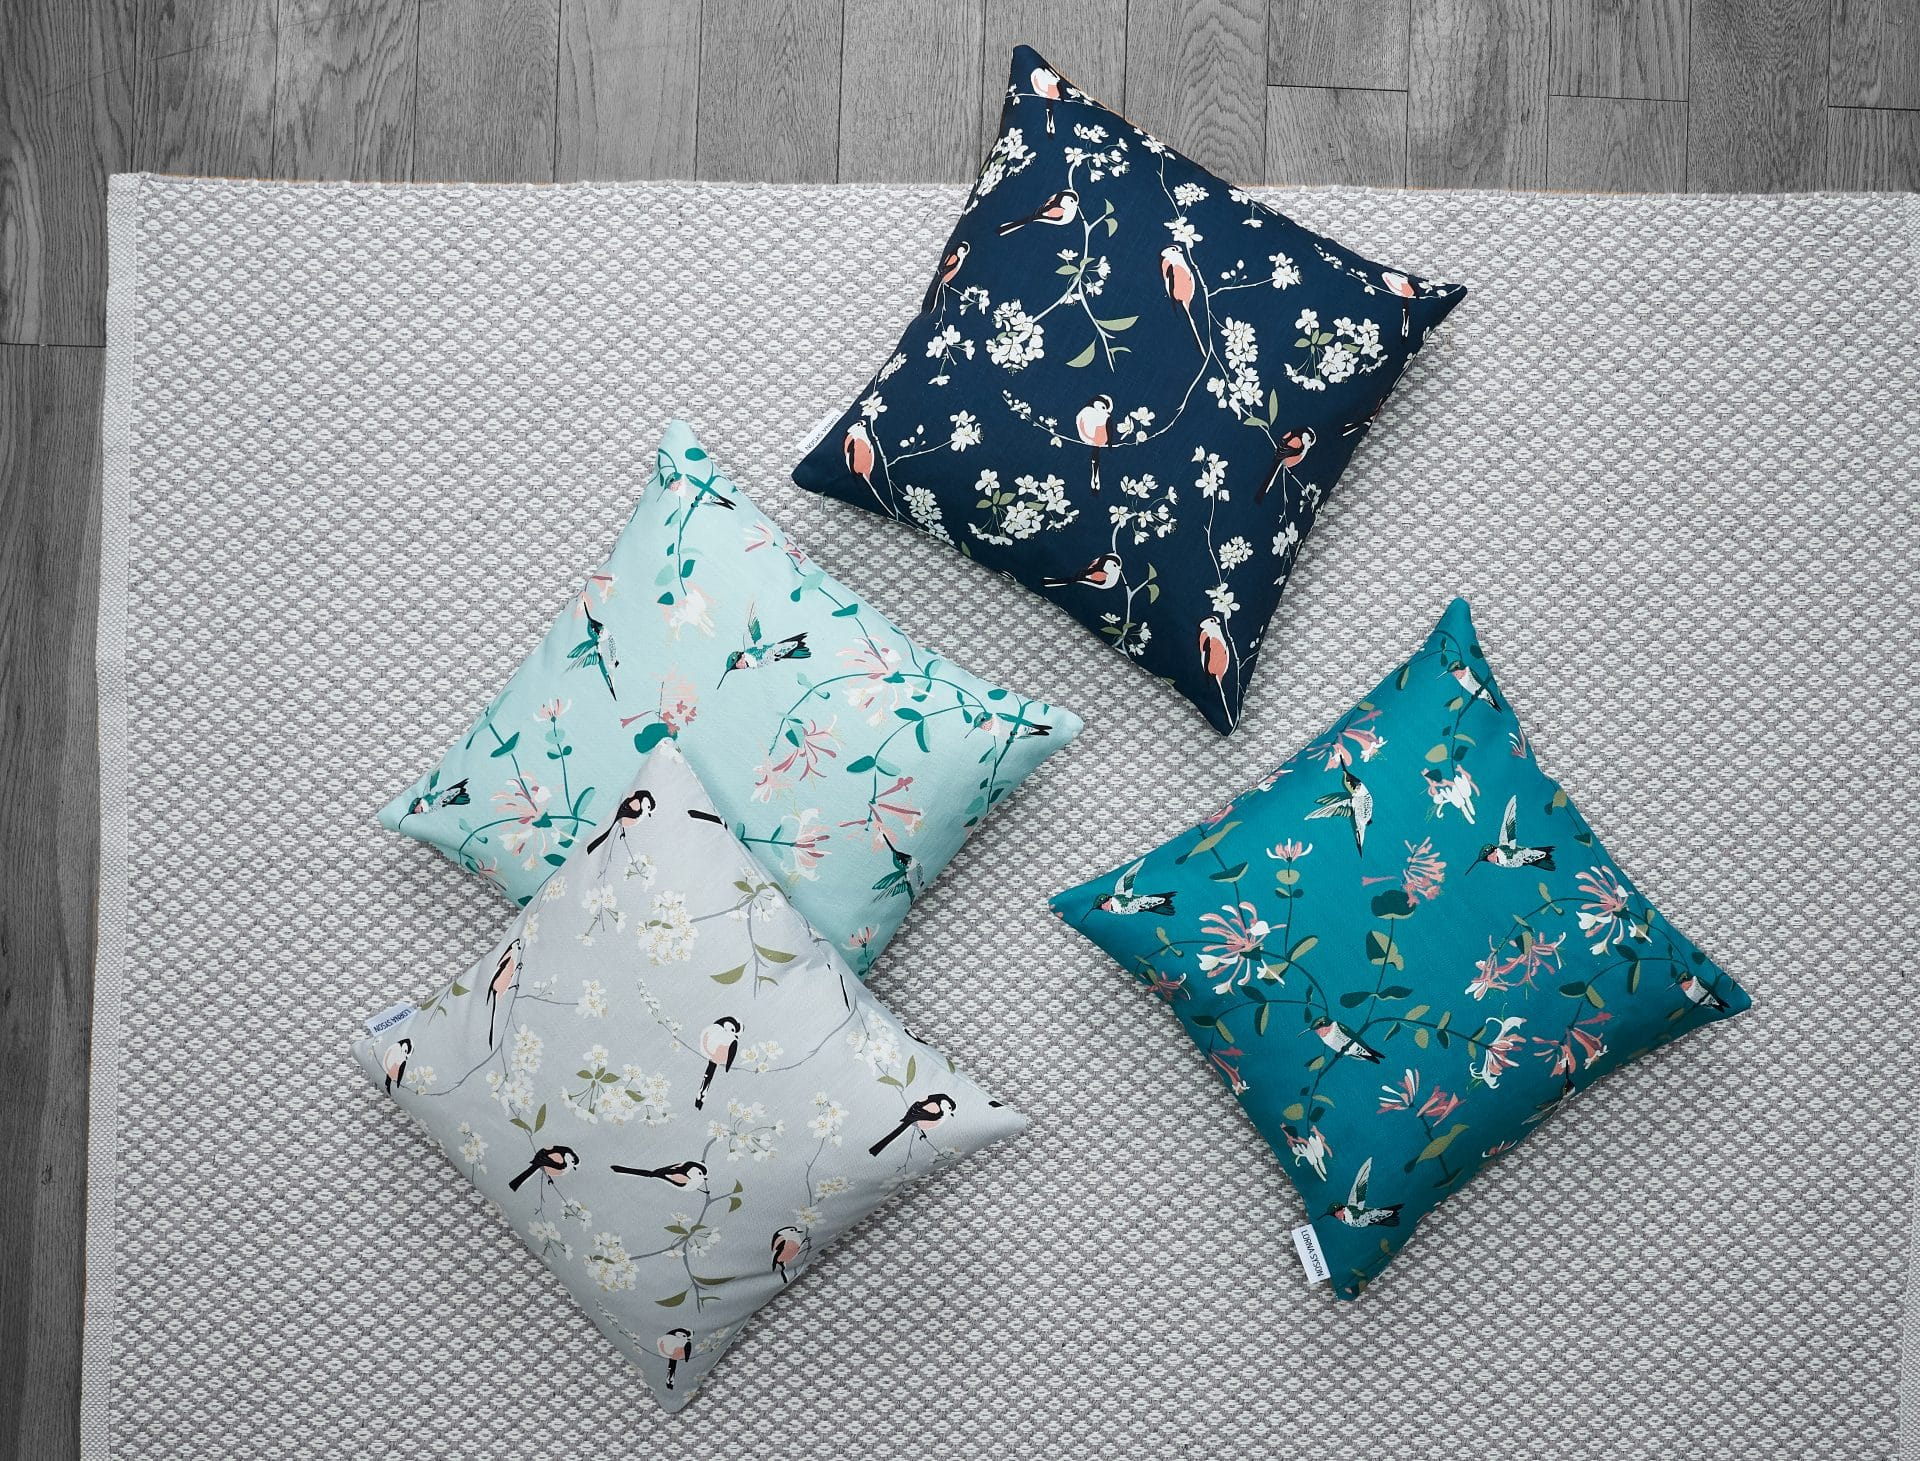 RSPB cushions by Lorna Syson